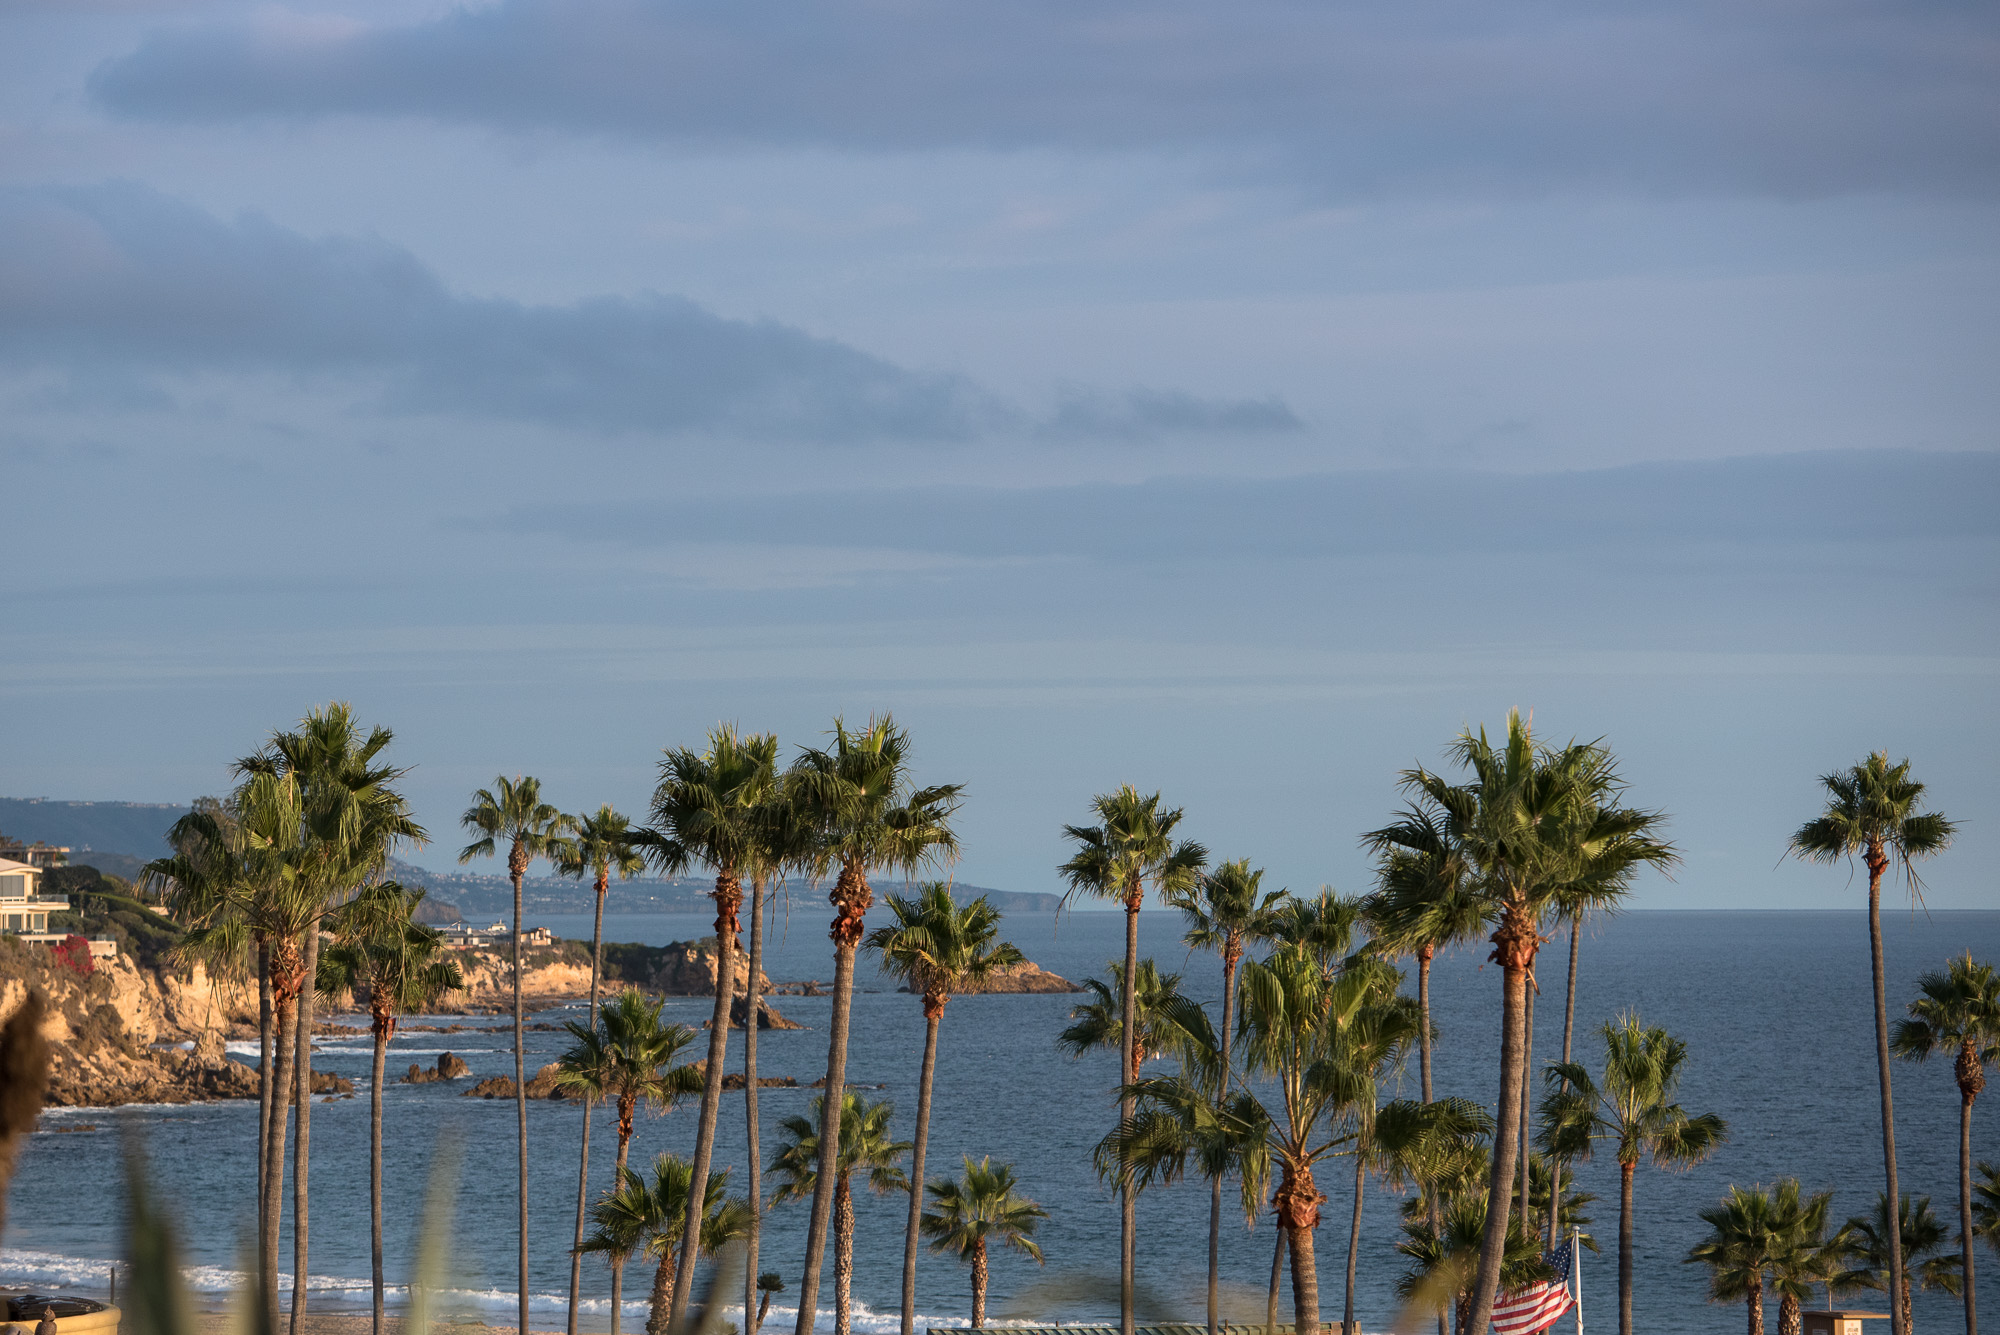 My favorite view. Standing at Lookout Point in Corona del Mar looking south.